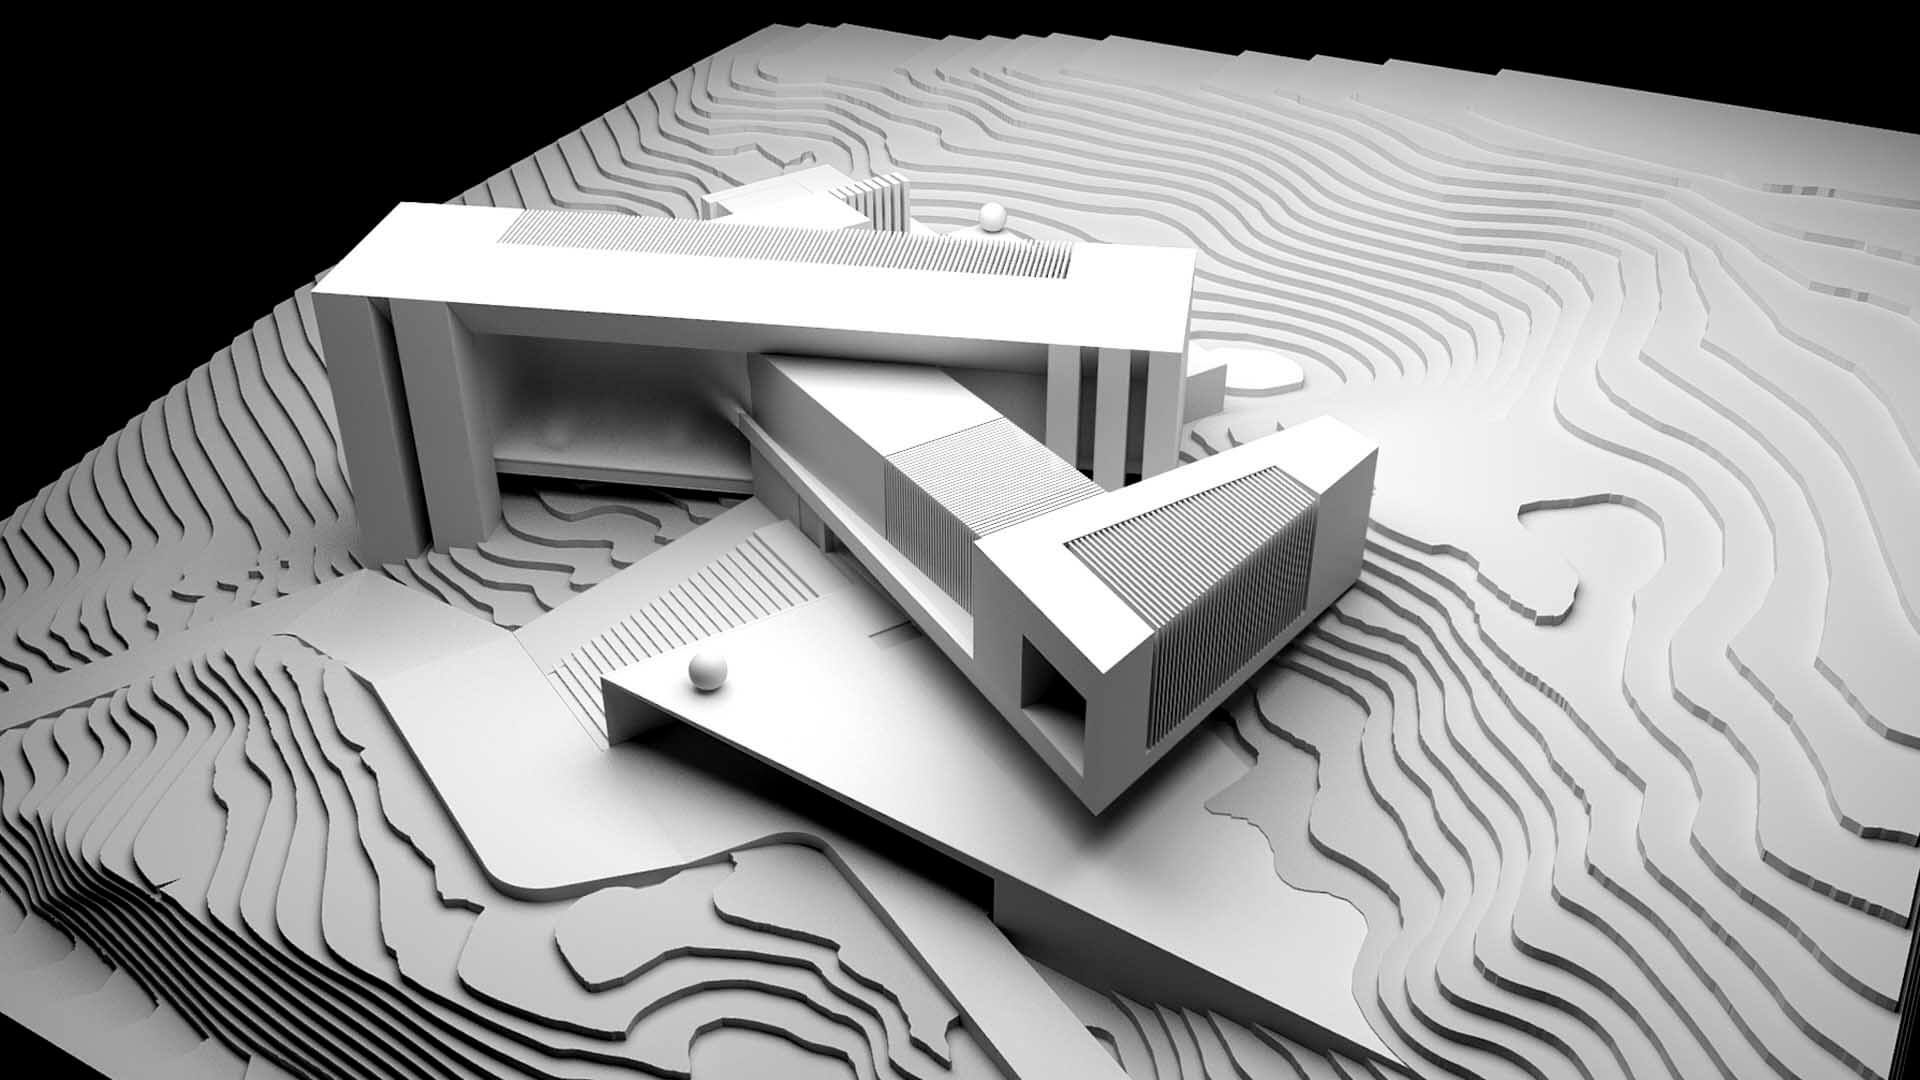 Topography Architecture Model Related posts